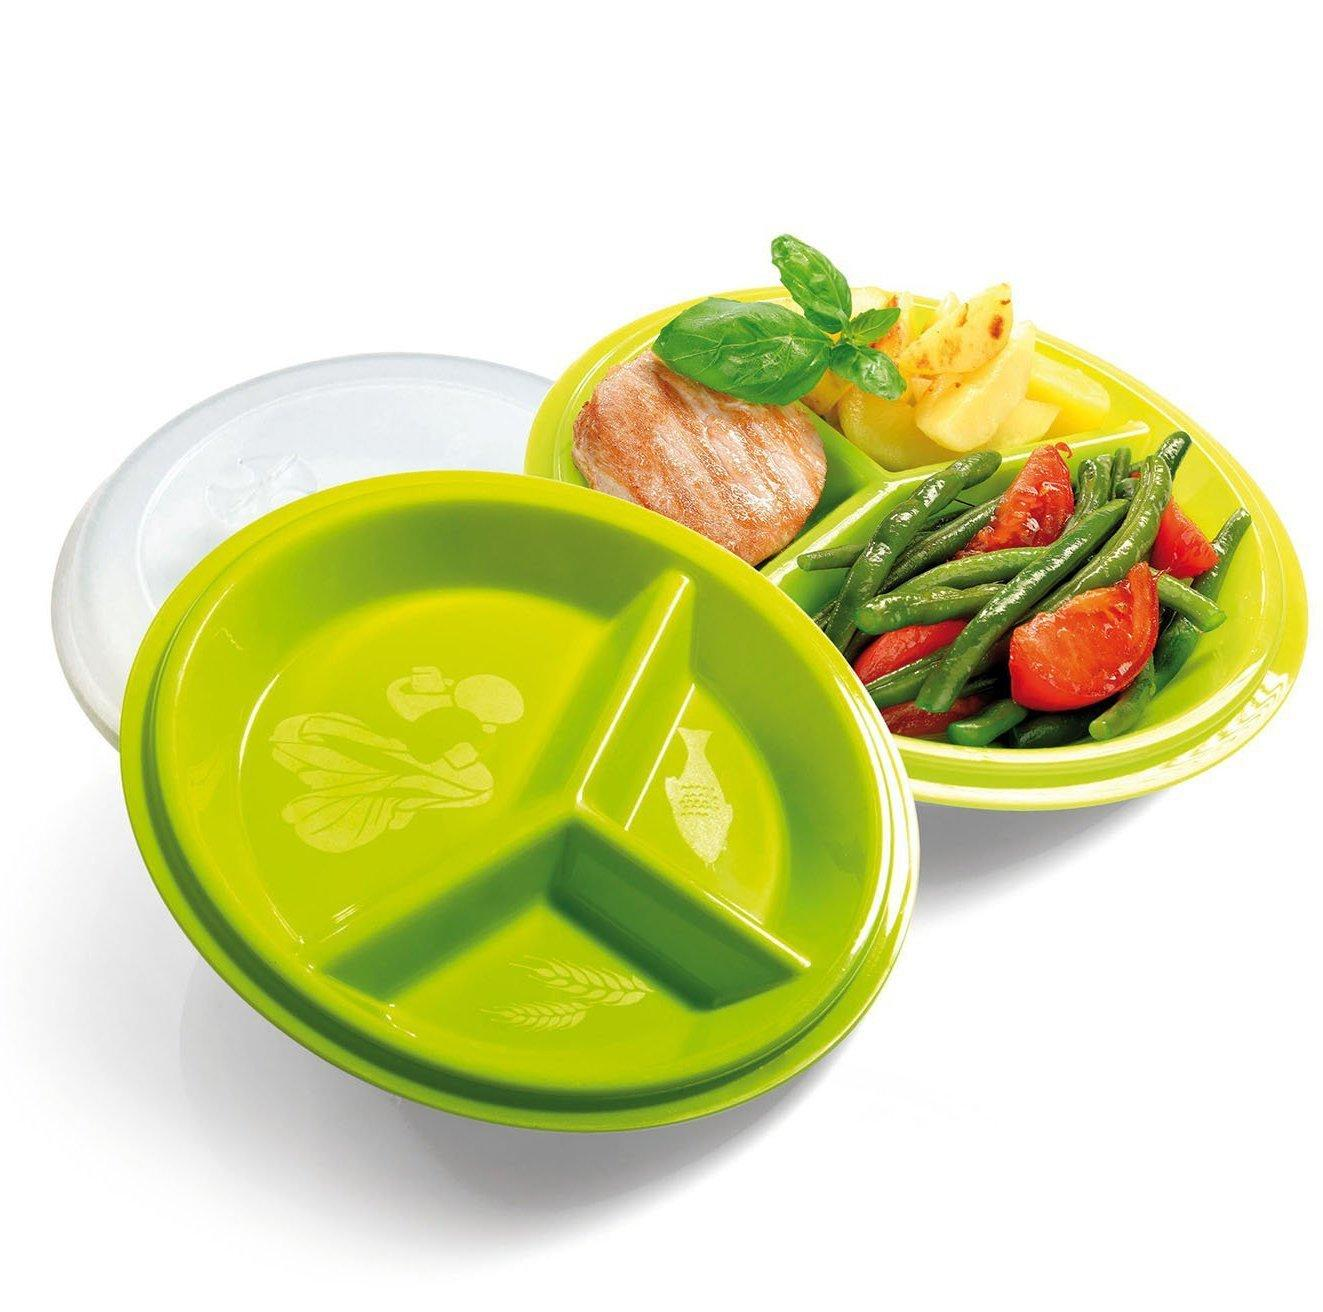 Amazon.com: Precise Portions 2-Go Healthy Portion Control ...